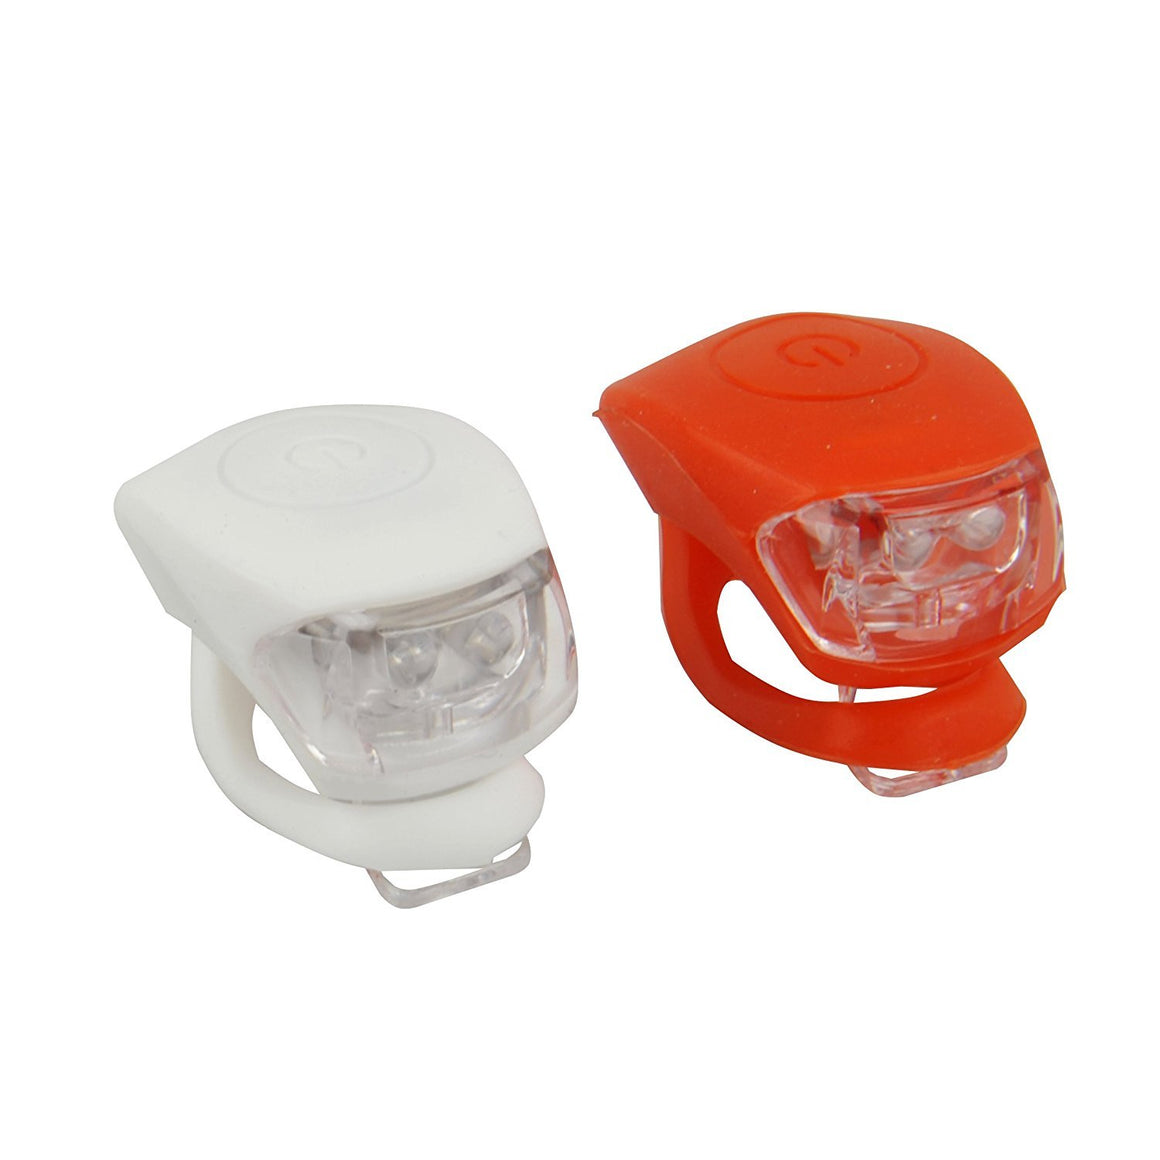 BTR Silicone Bicycle Front and Rear LED Bike Lights